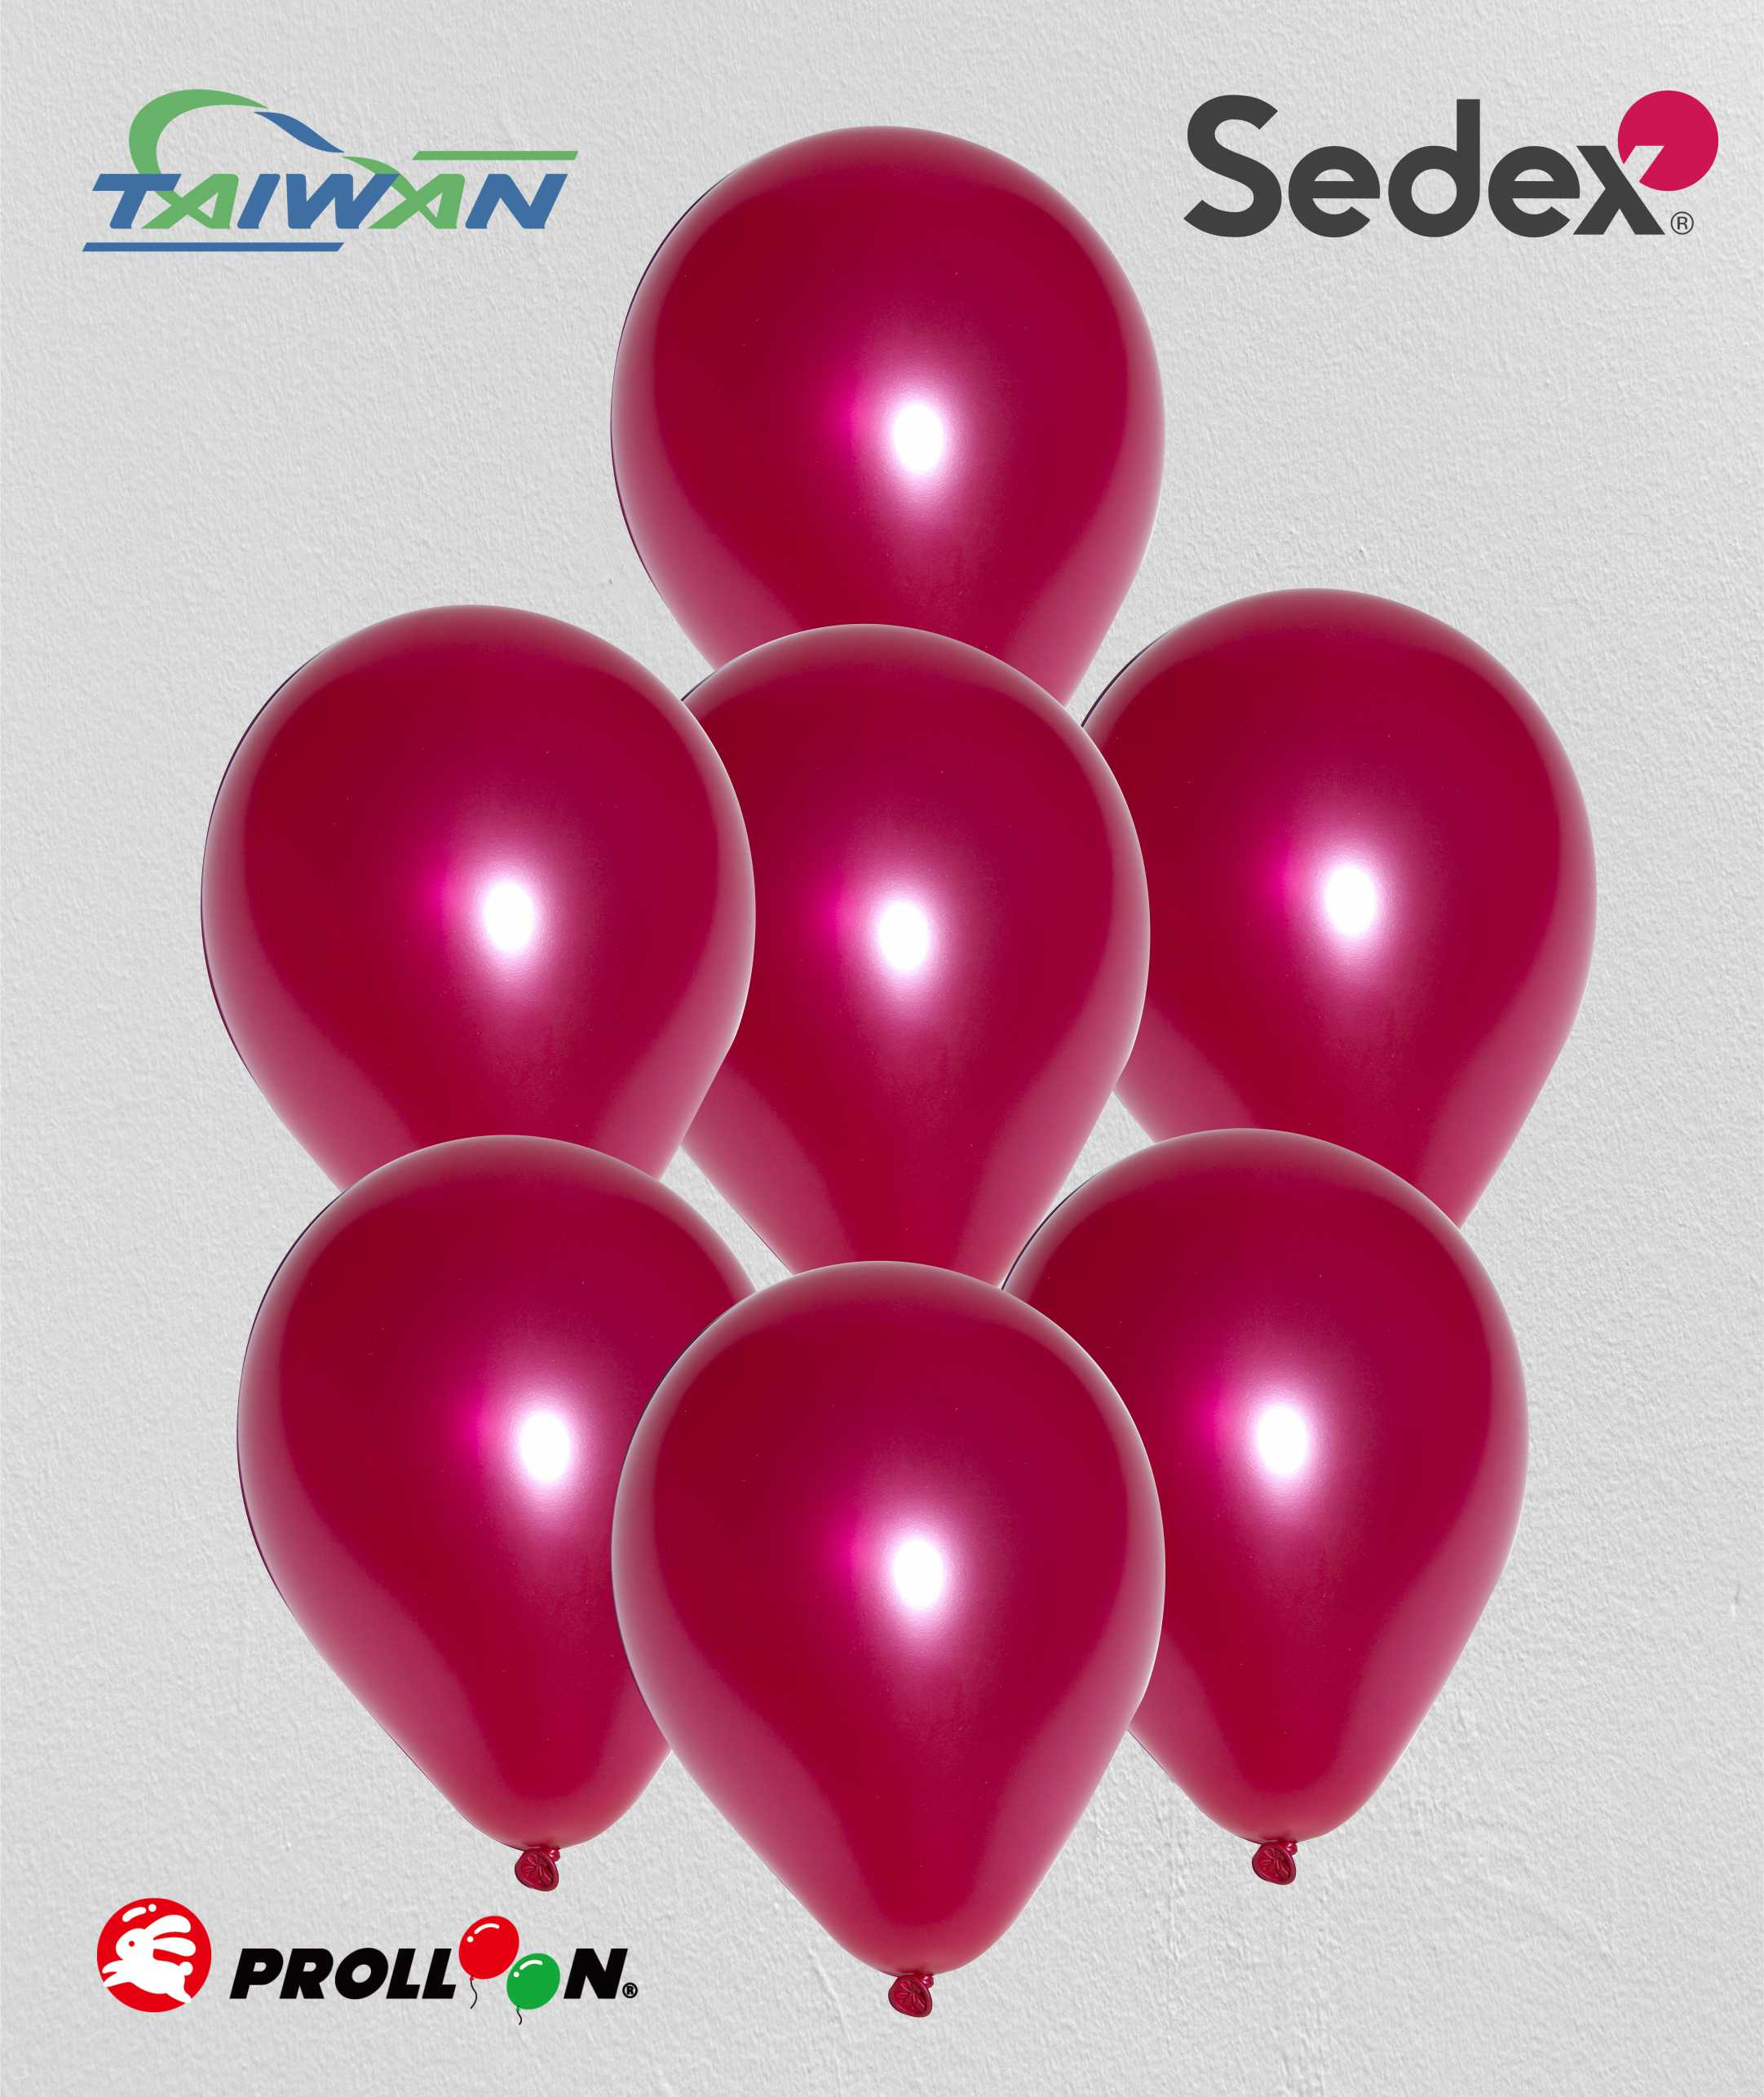 Metallic Bright Red Balloon Garland 100 Pack 12 Inch Latex Balloons Wedding Anniversary Love Party Decorations Taiwantrade Com